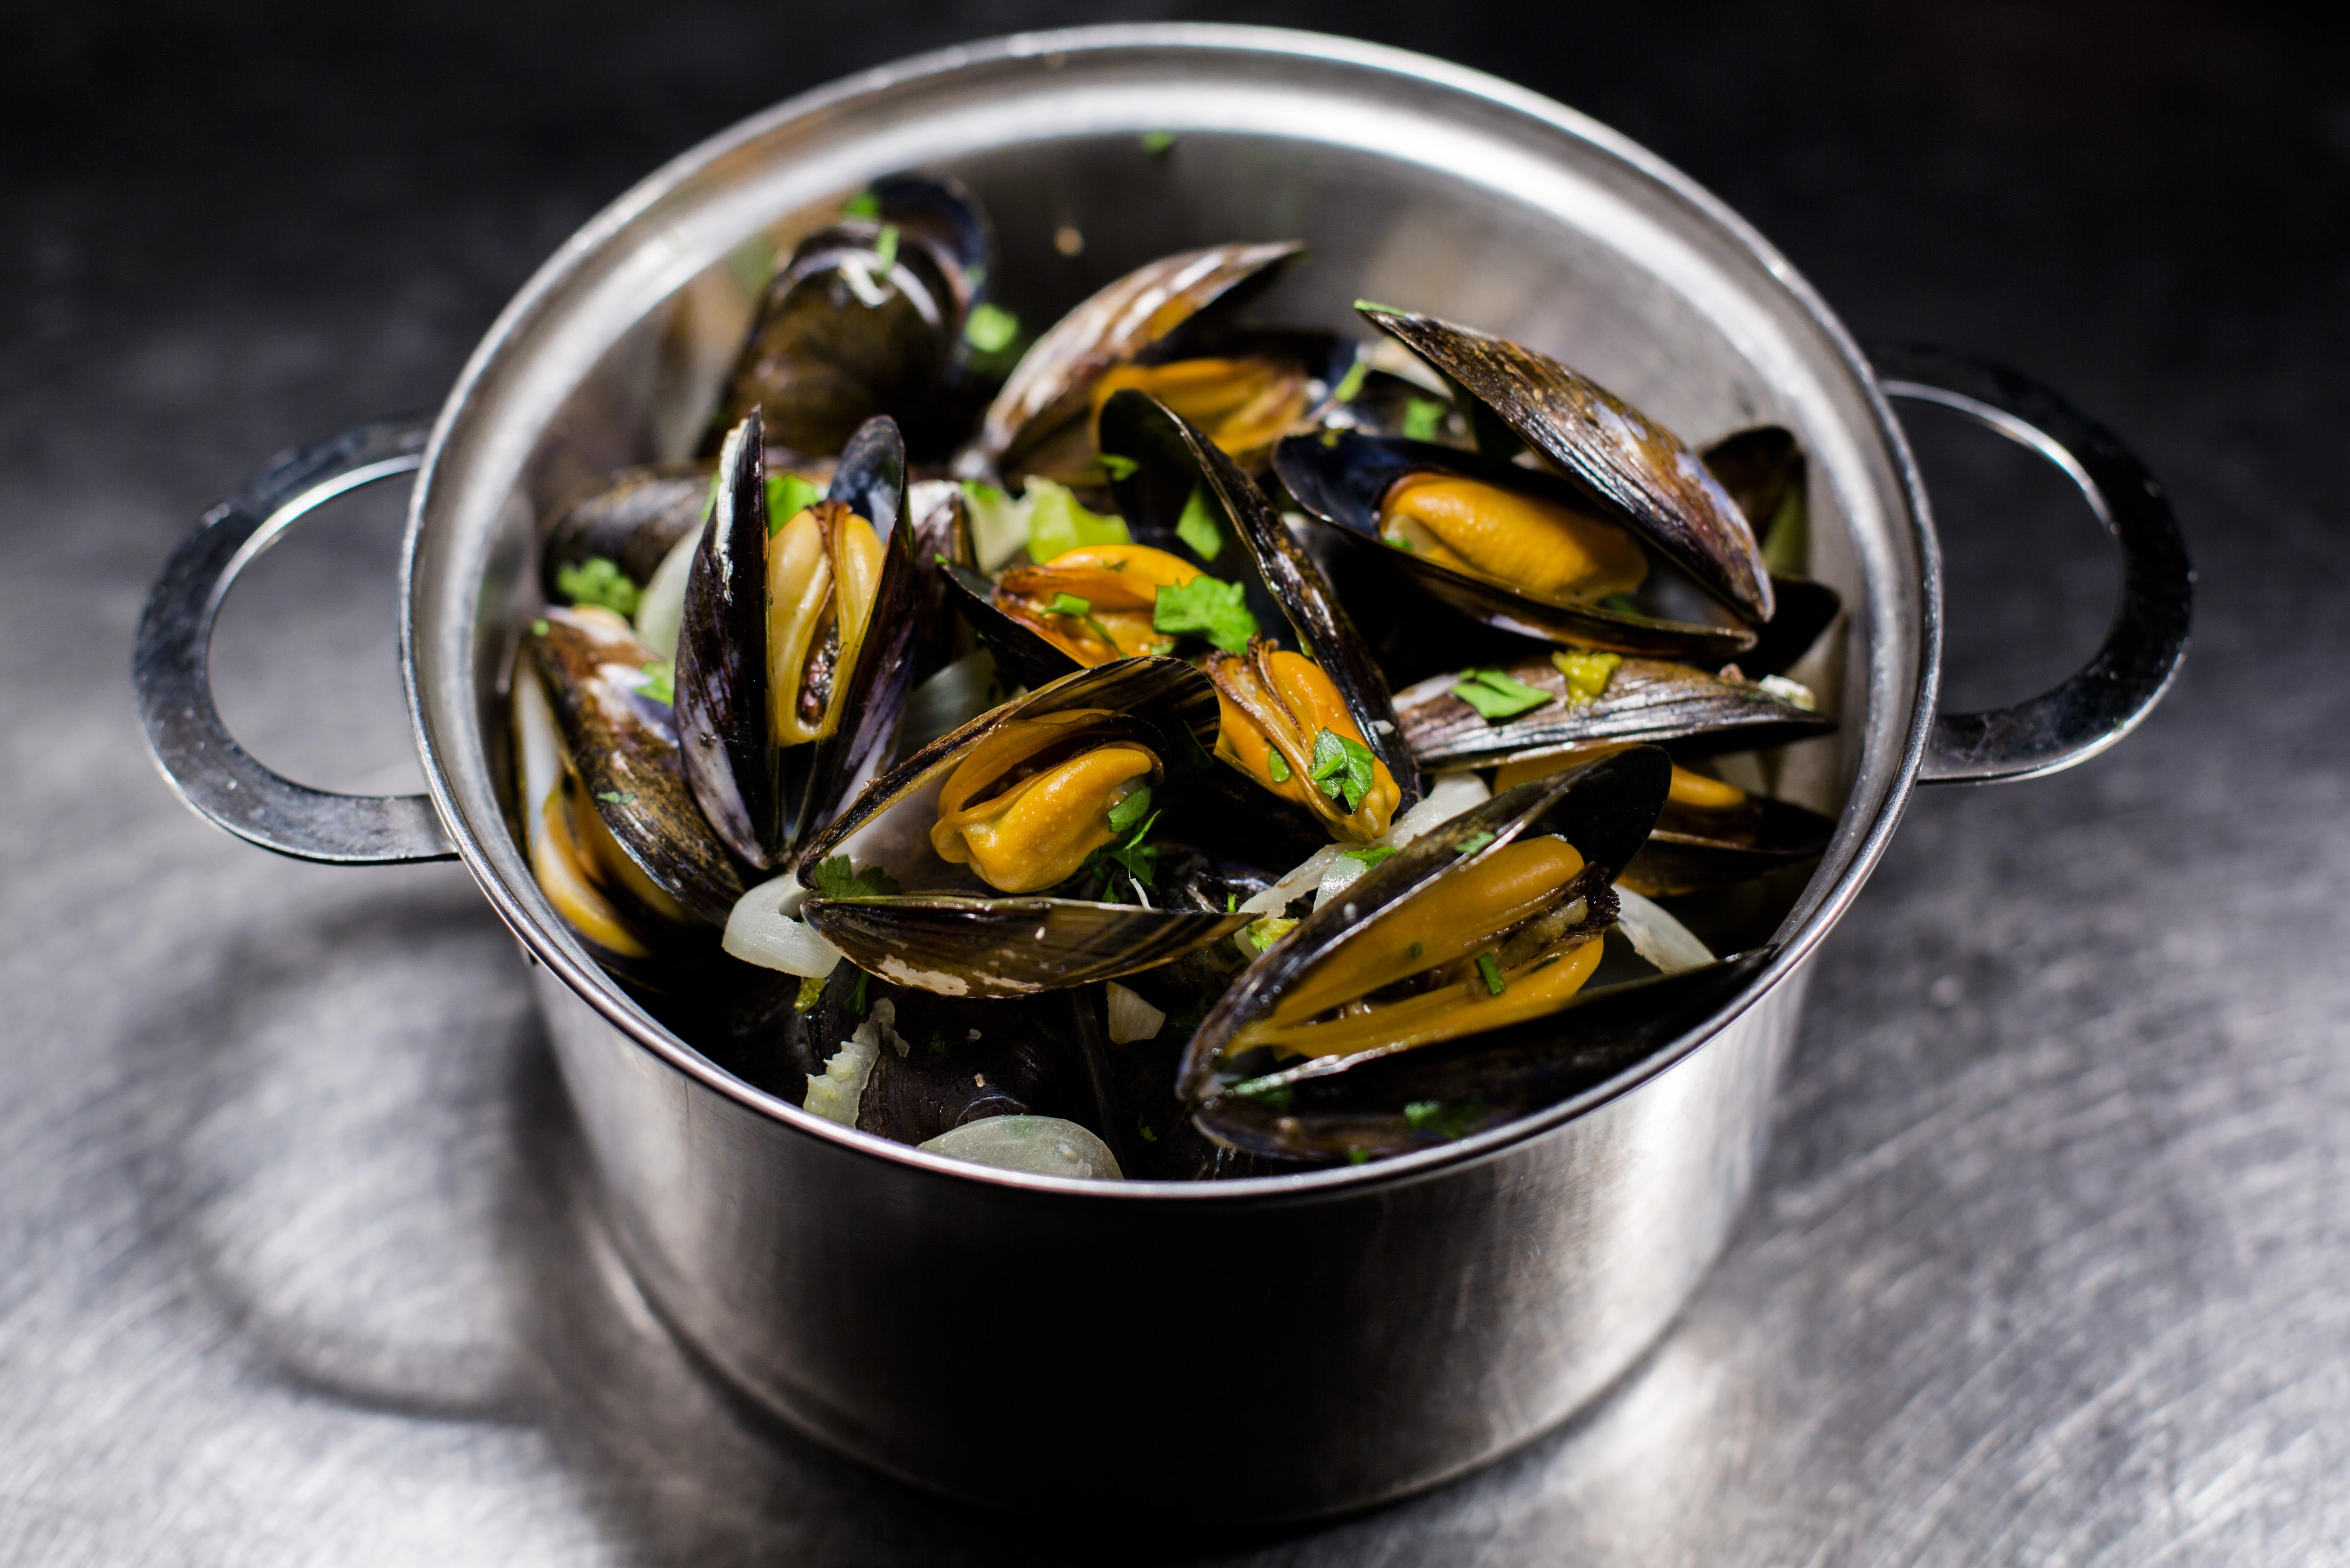 Reserve a table at Belgo - Soho